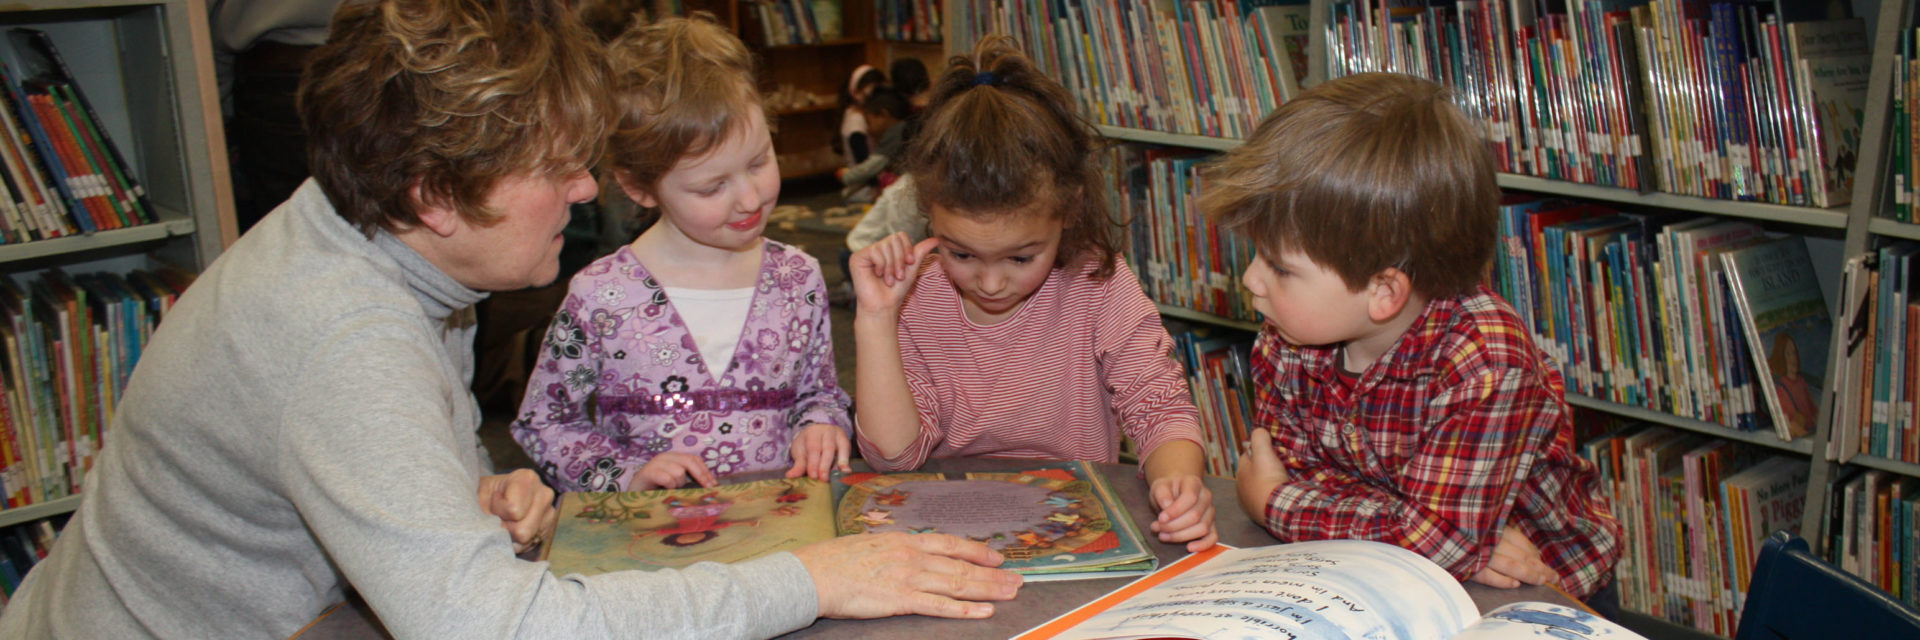 Children learn at Chace Children's Discovery Library in Providence Public Library